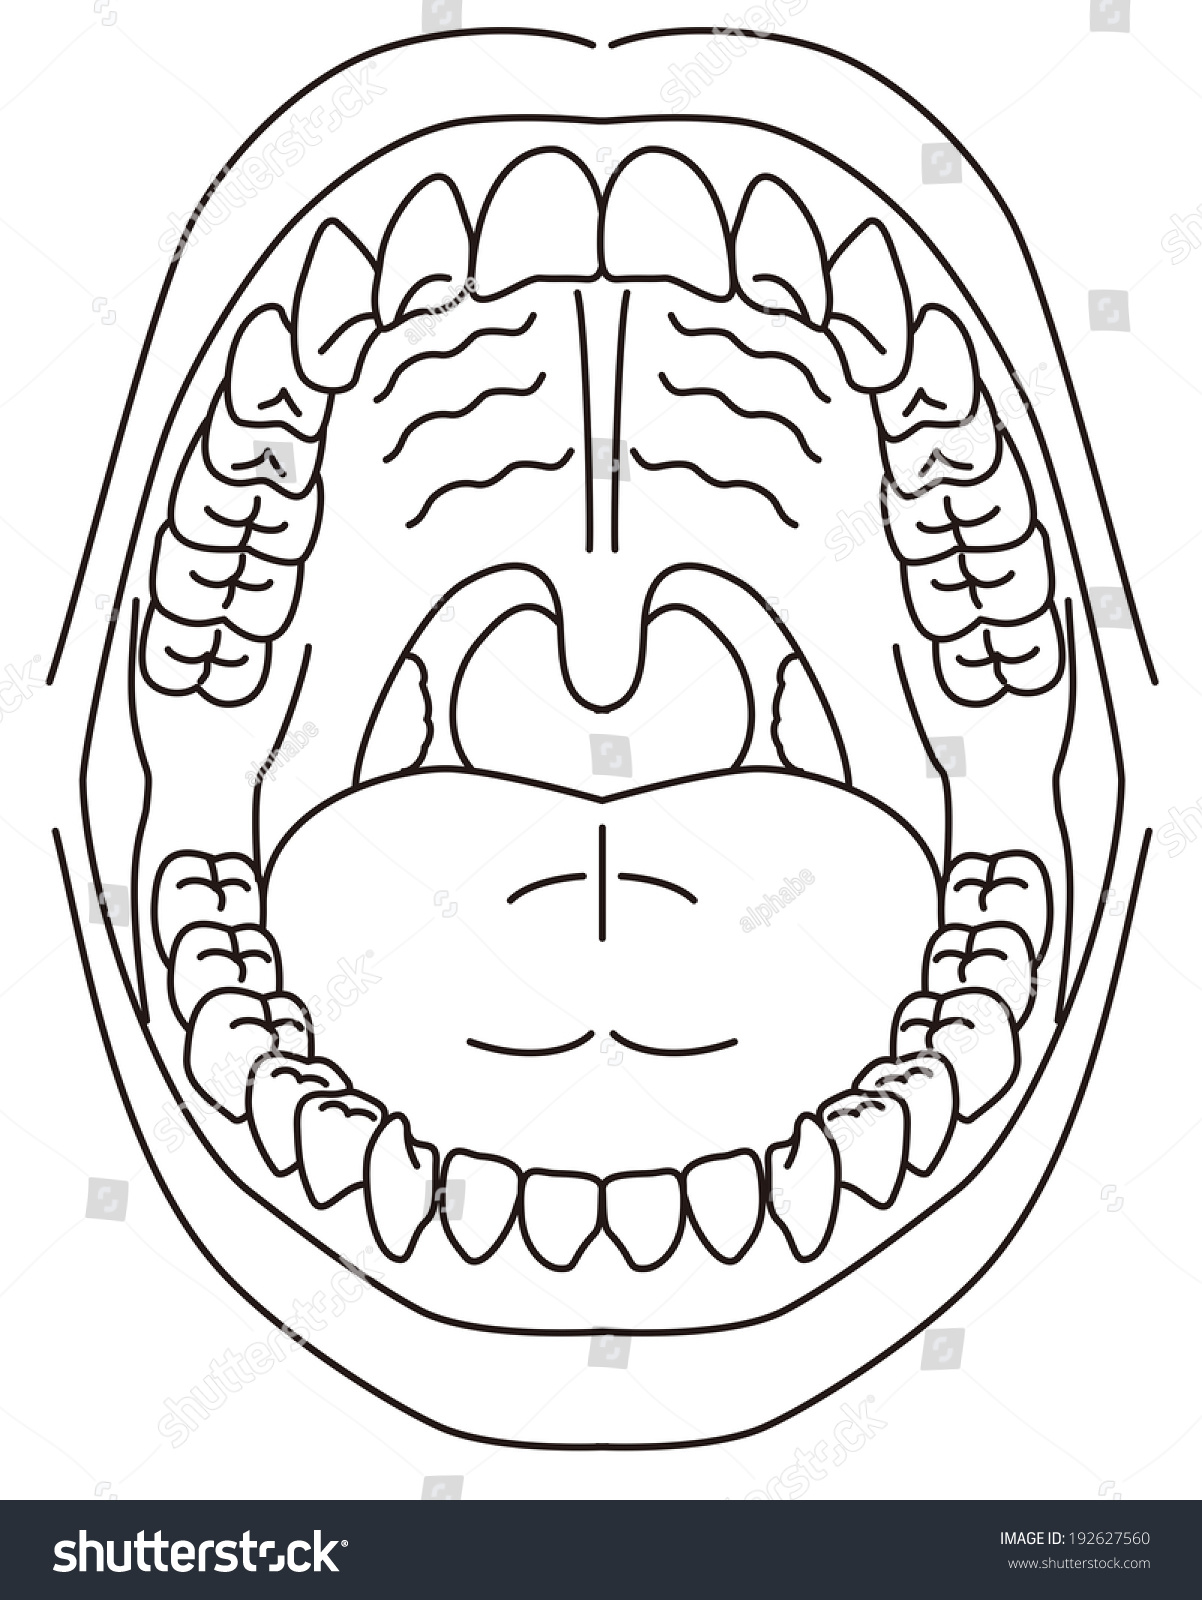 hight resolution of schematic diagram of the oral cavity